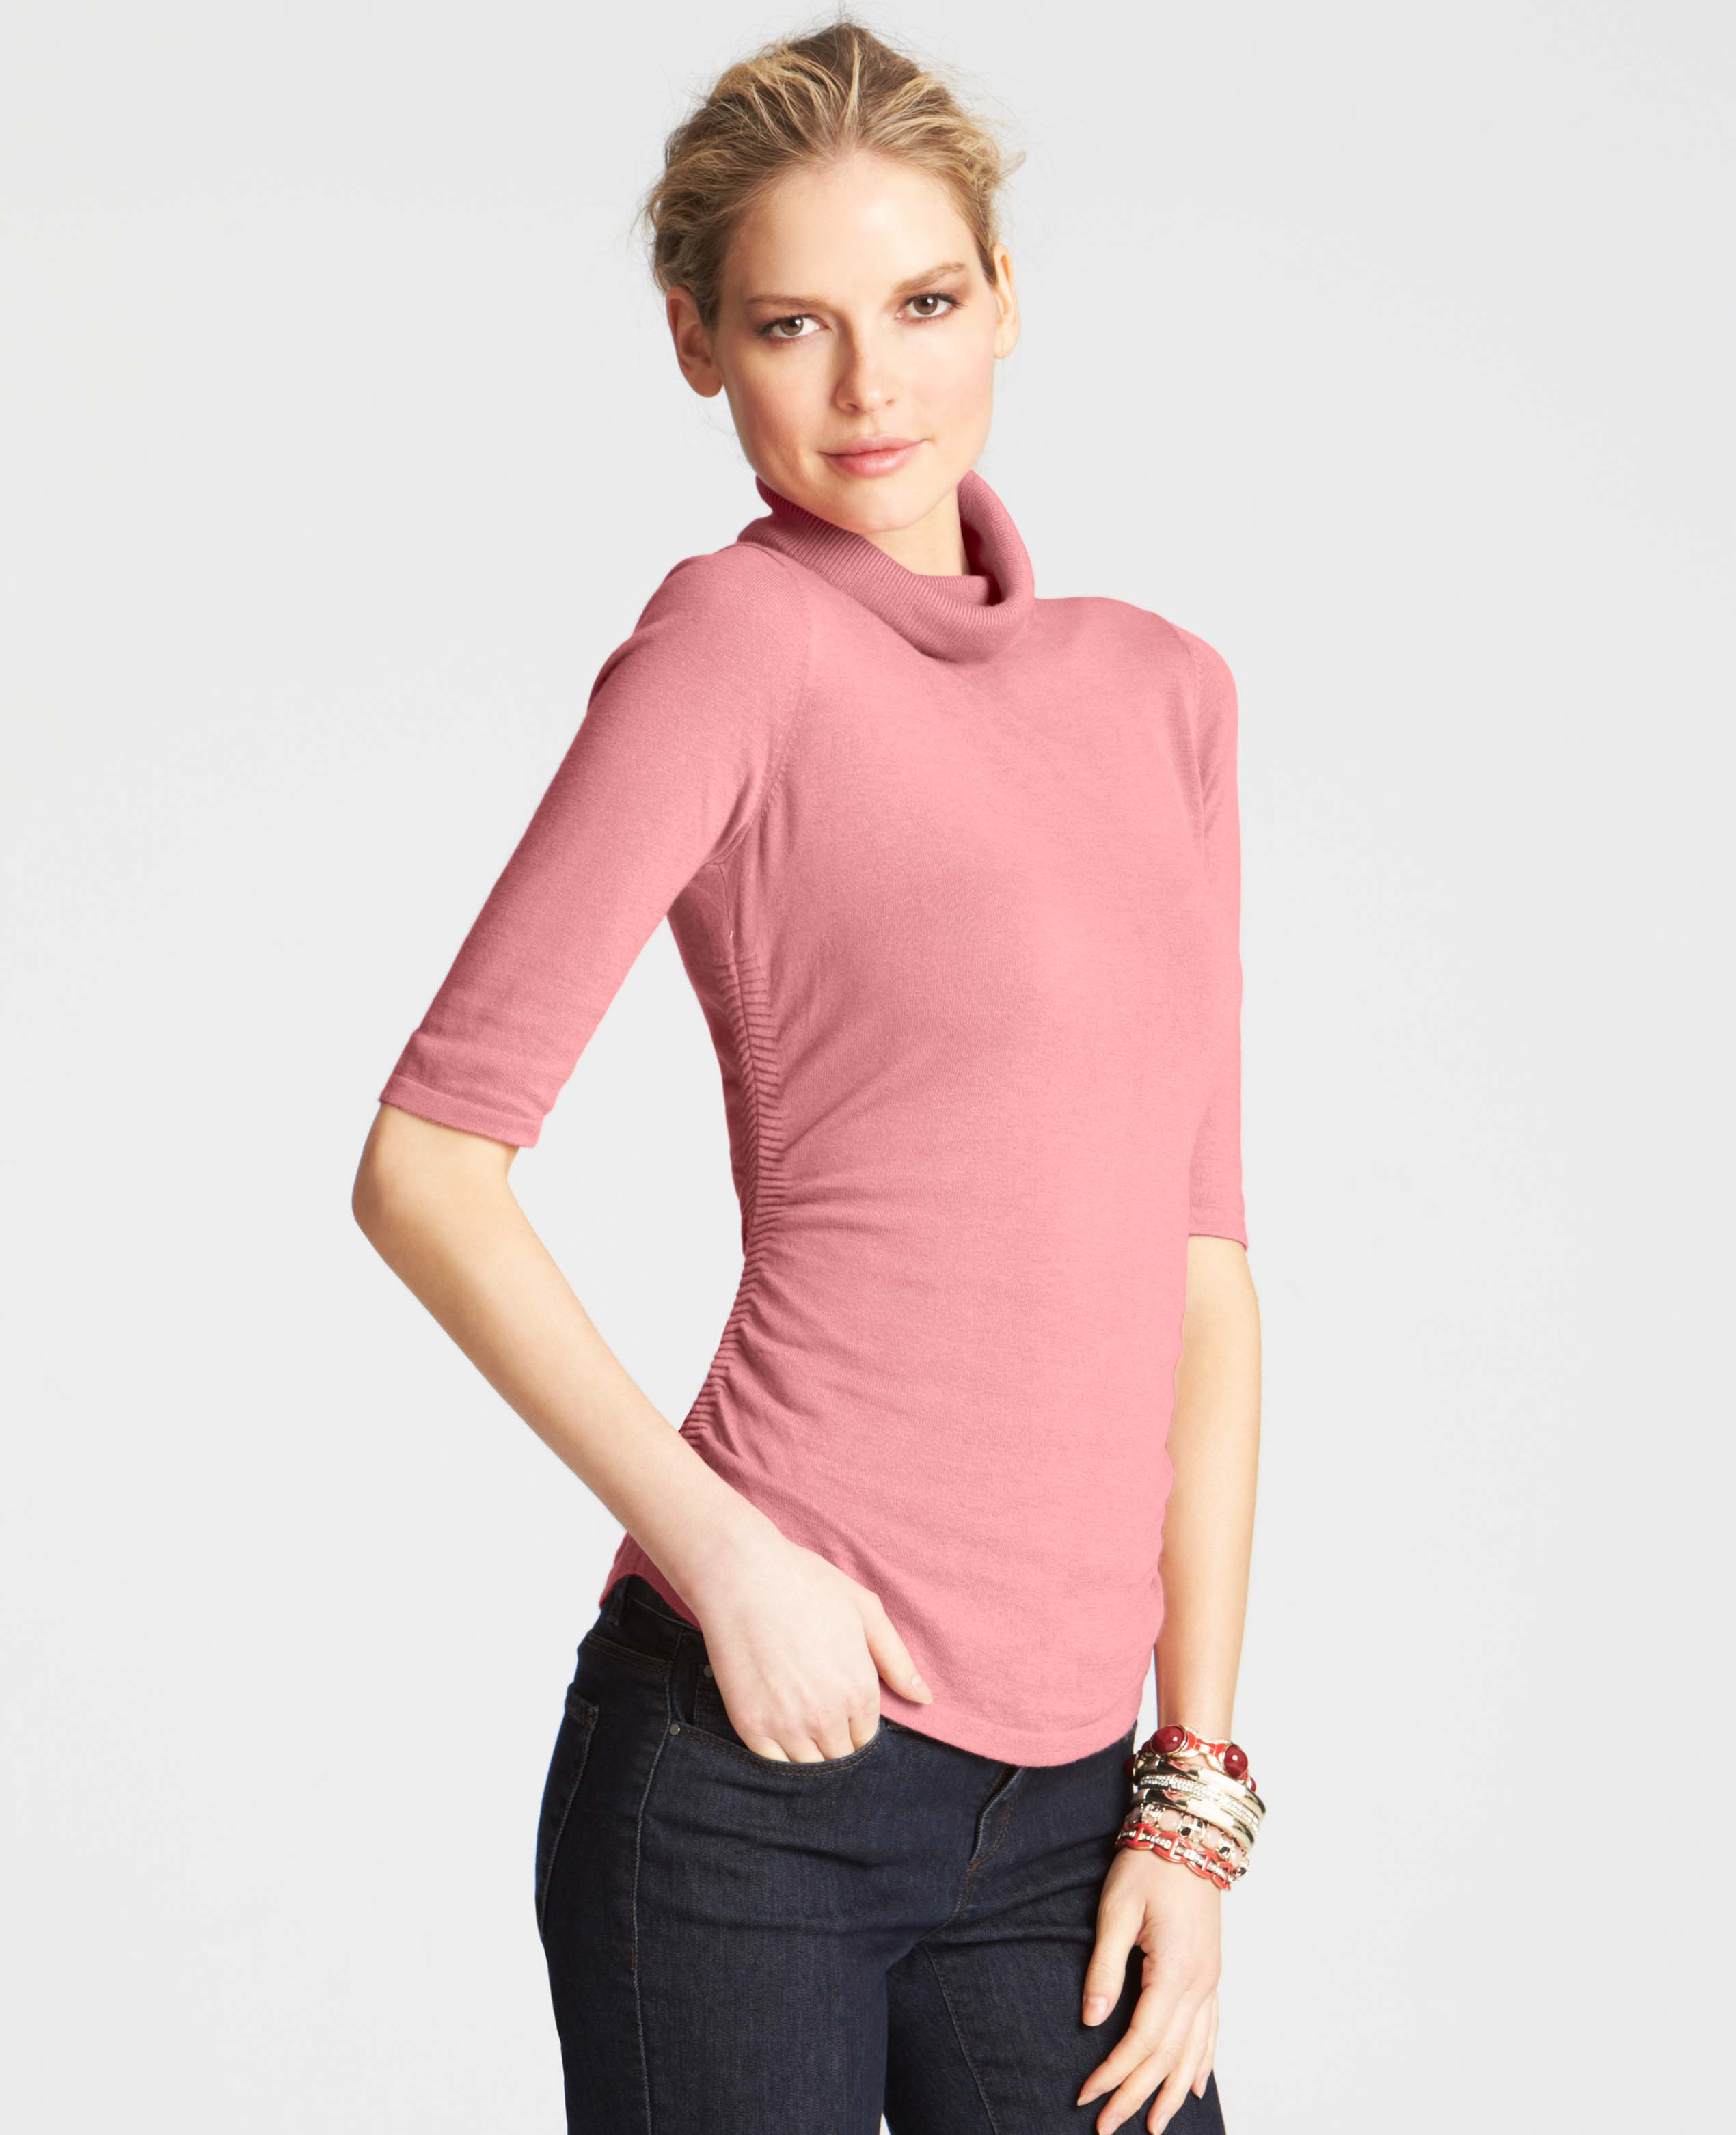 Ann taylor Ruched Short Sleeve Turtleneck Sweater in Pink | Lyst